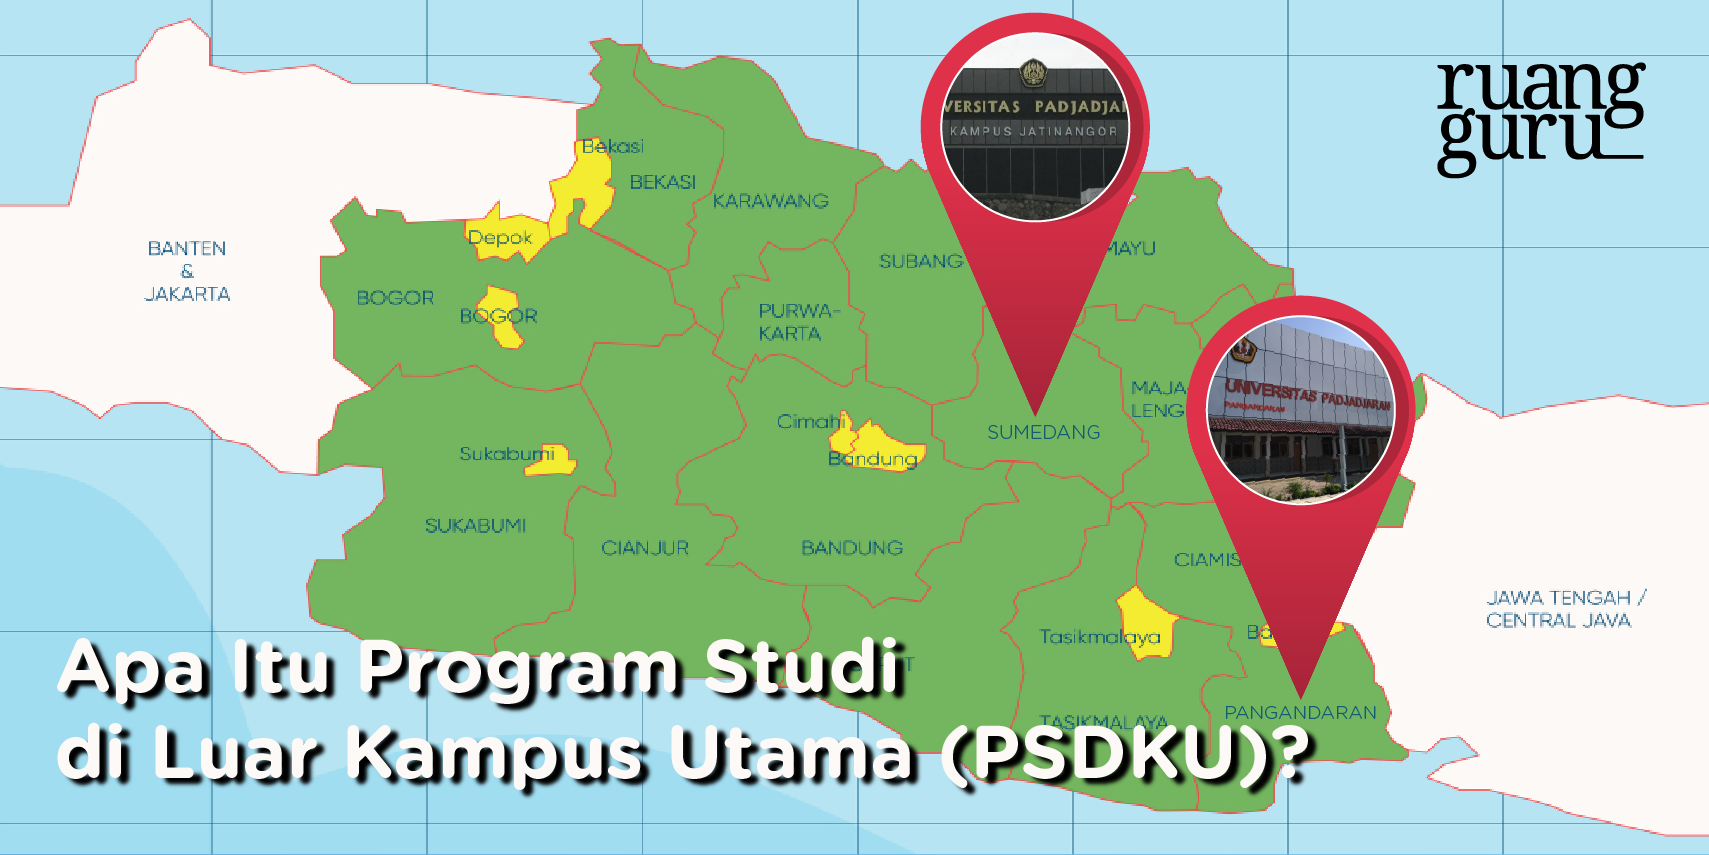 program studi di luar kampus utama (PSDKU)